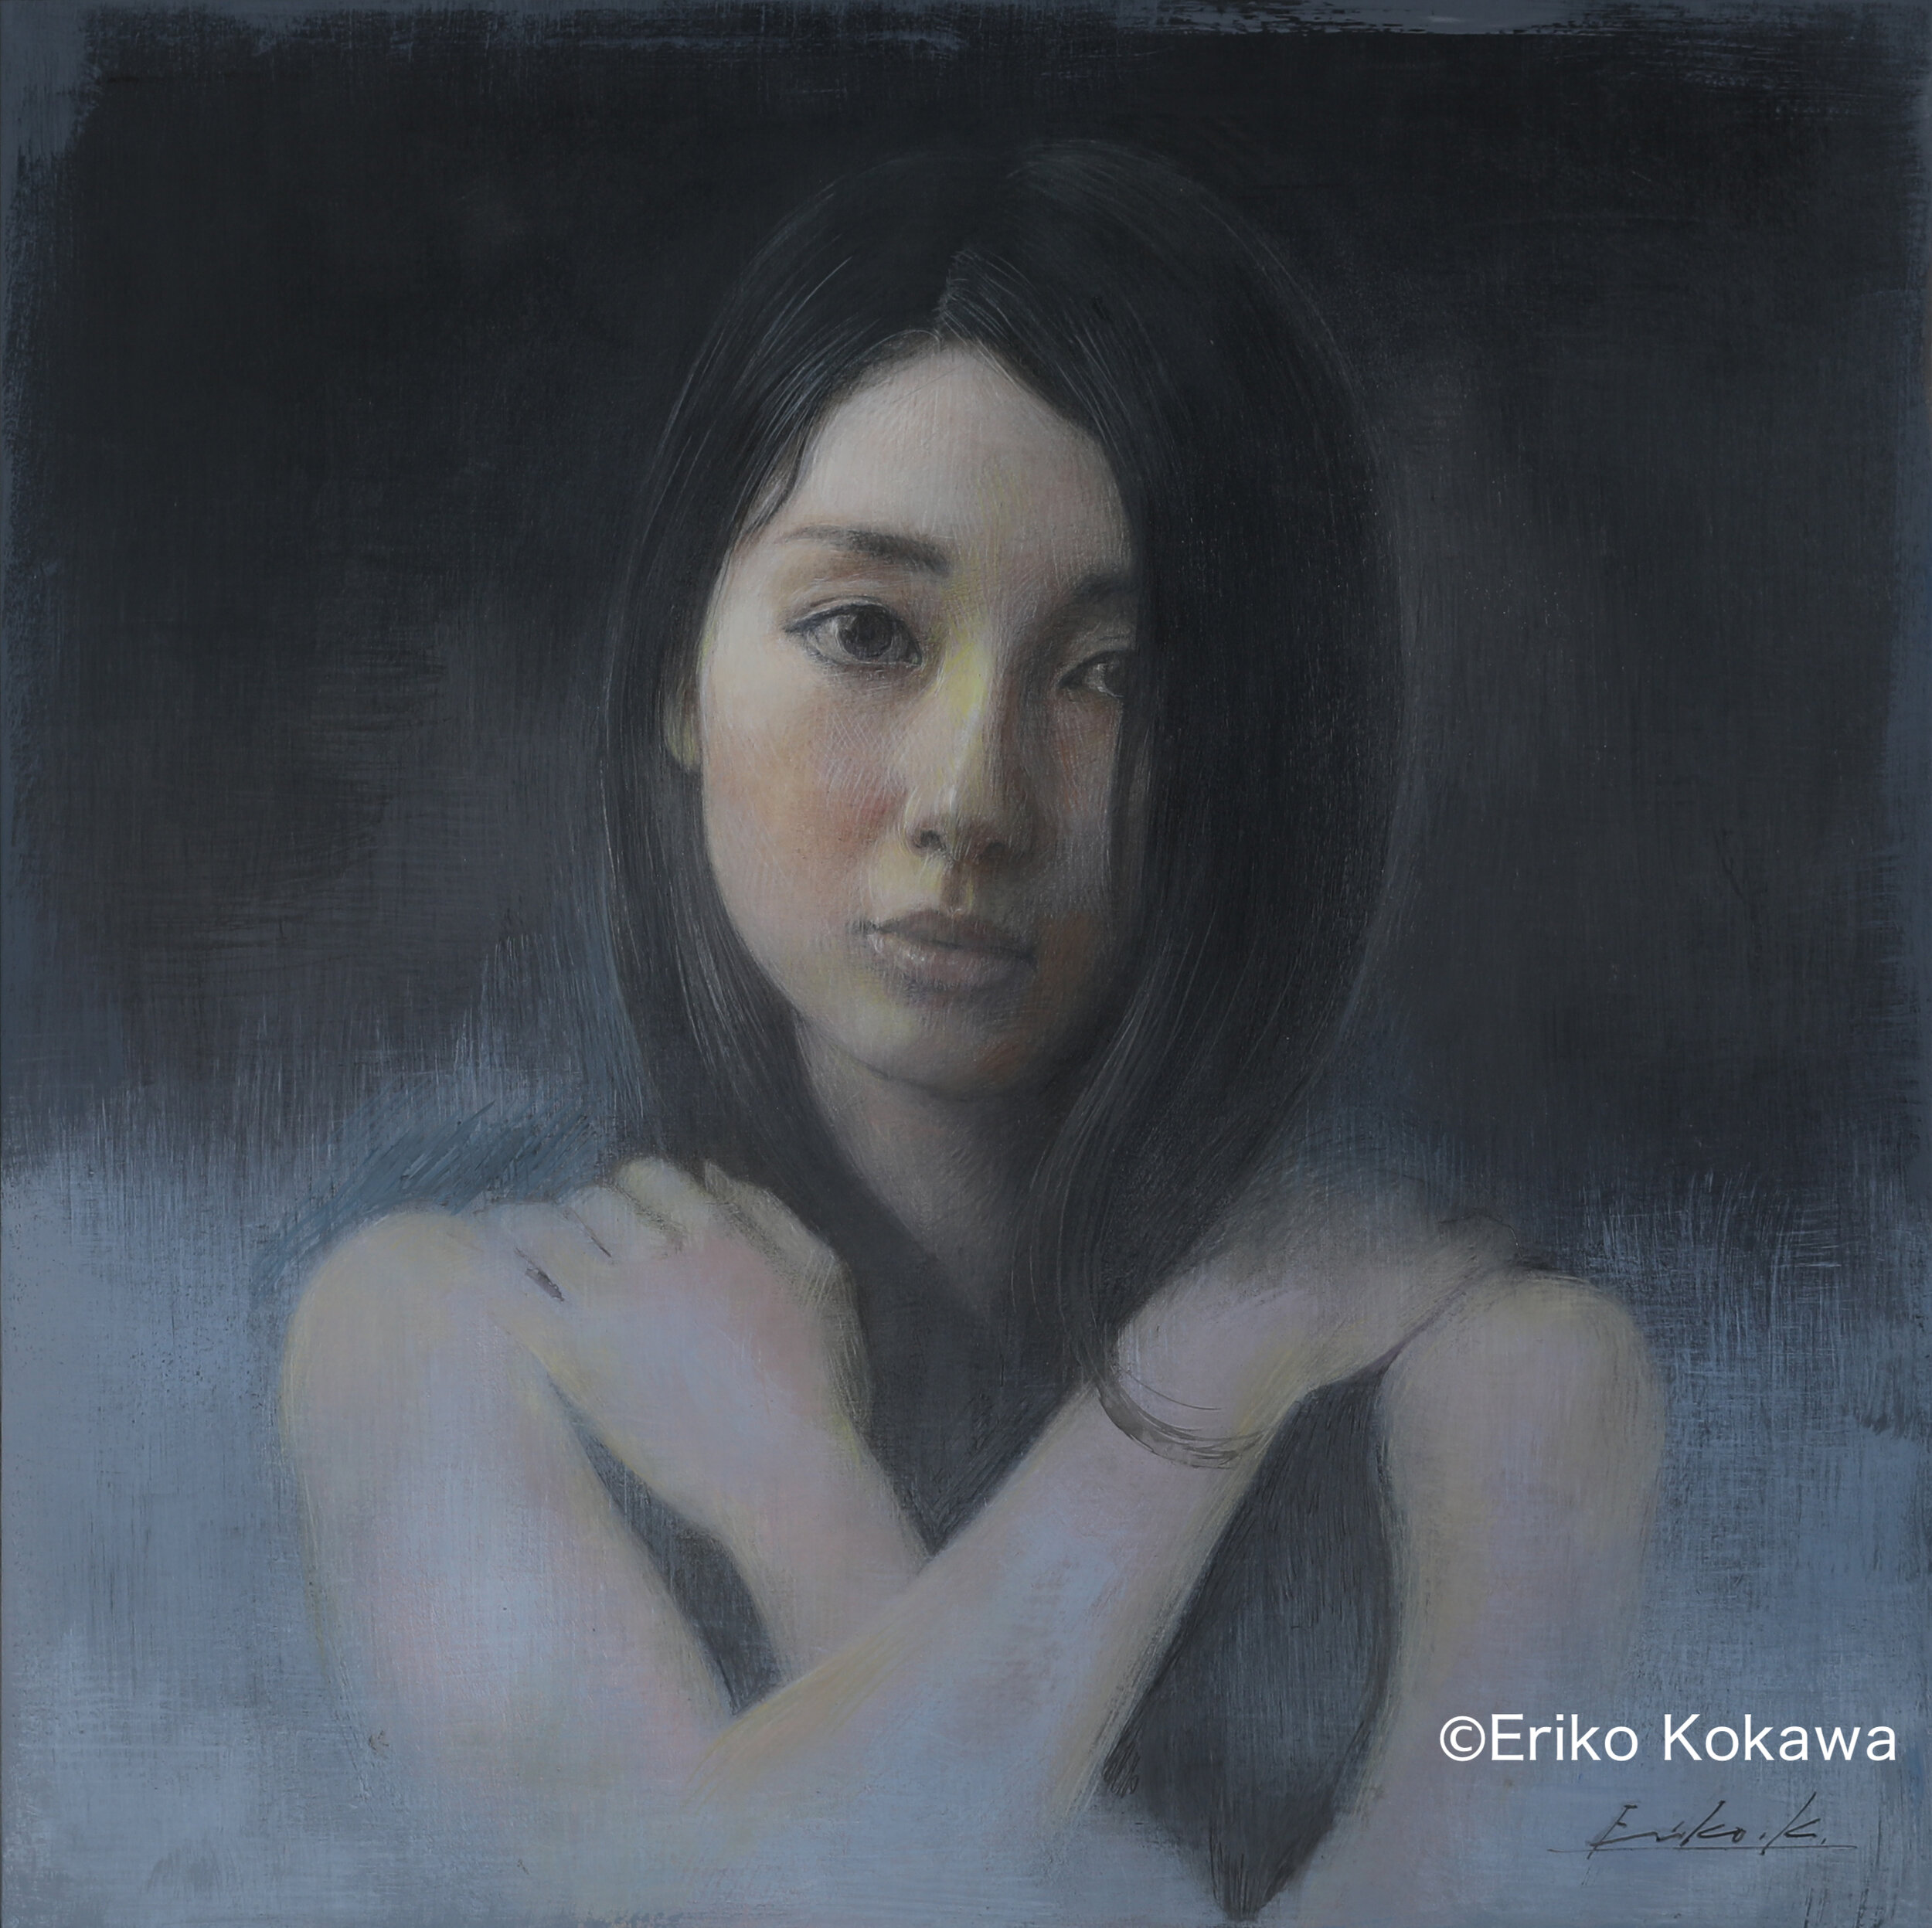 Eriko Kokawa_into the night.JPG